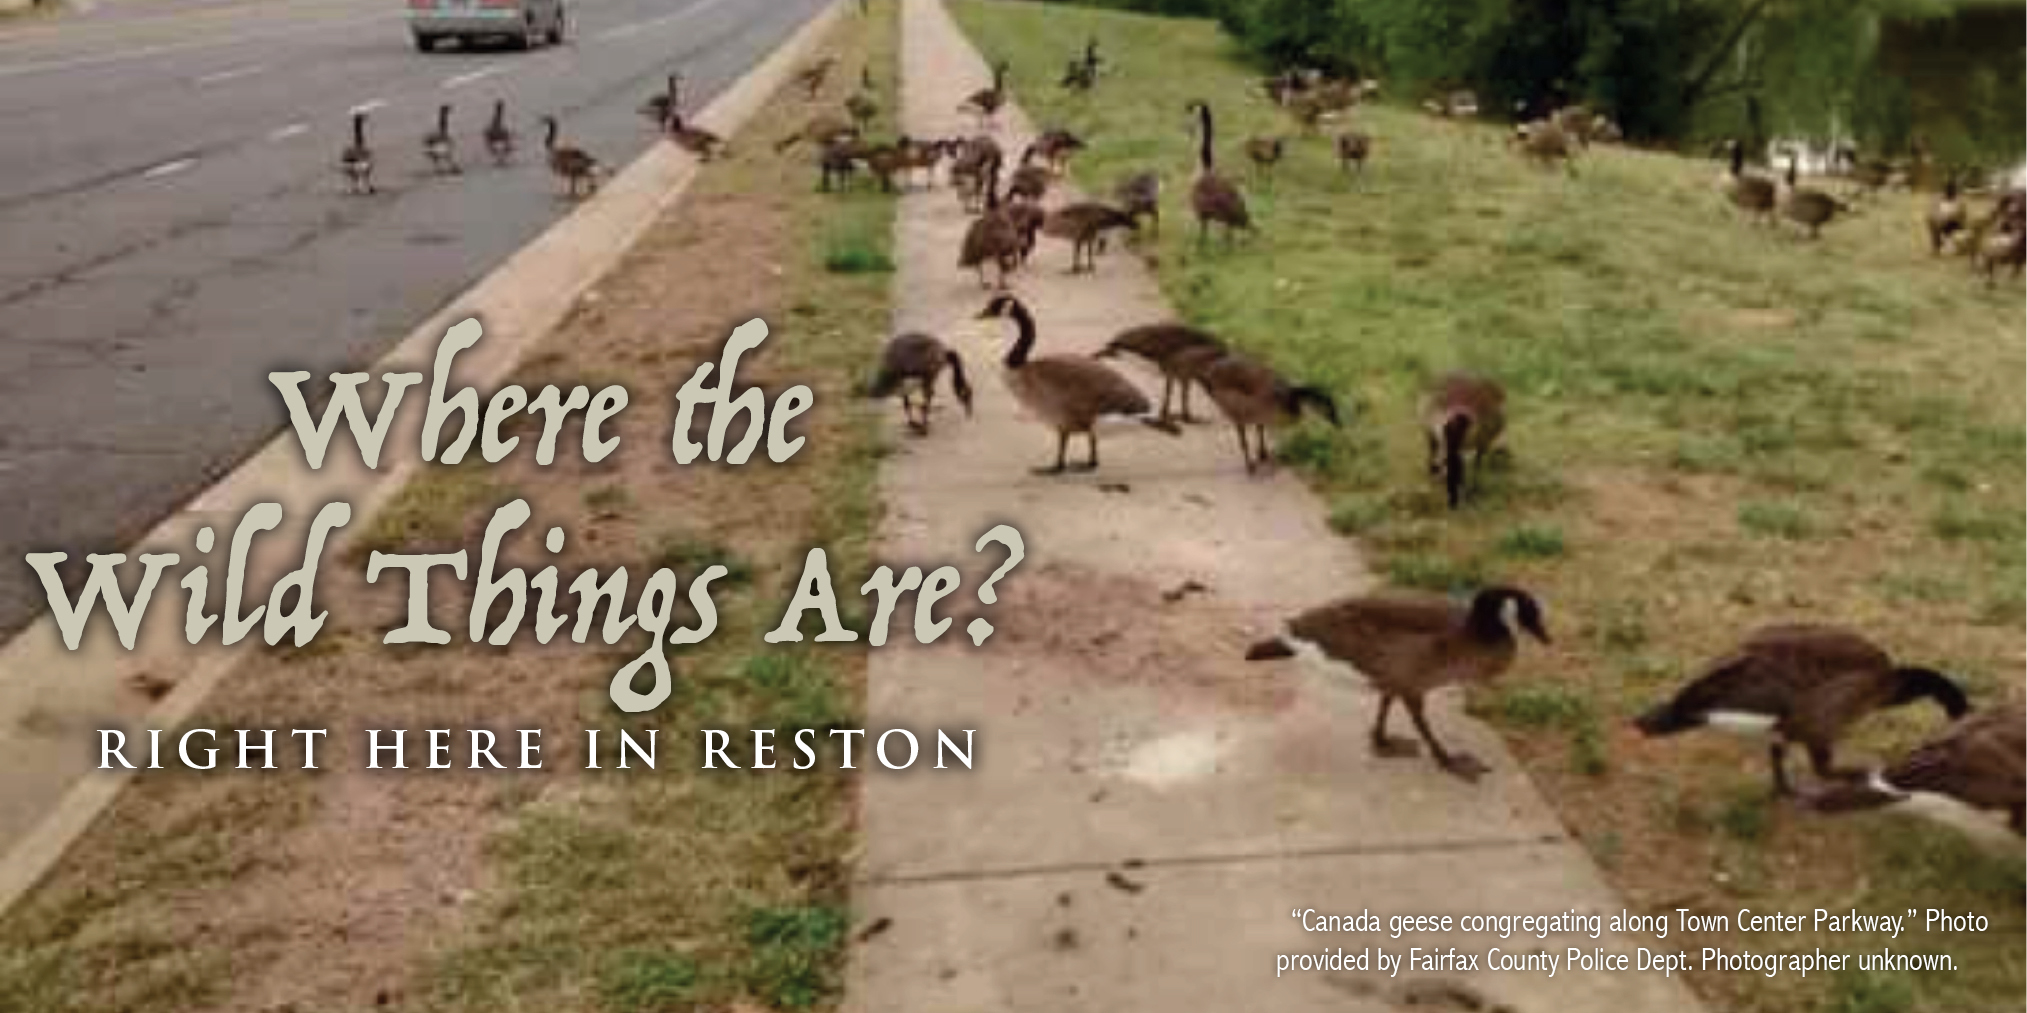 """Where the Wild Things Are? Right Here in Reston. """"Canada geese congregating along Town Center Parkway."""" Photo provided by FairfaxCounty Police Dept. Photographer unknown."""